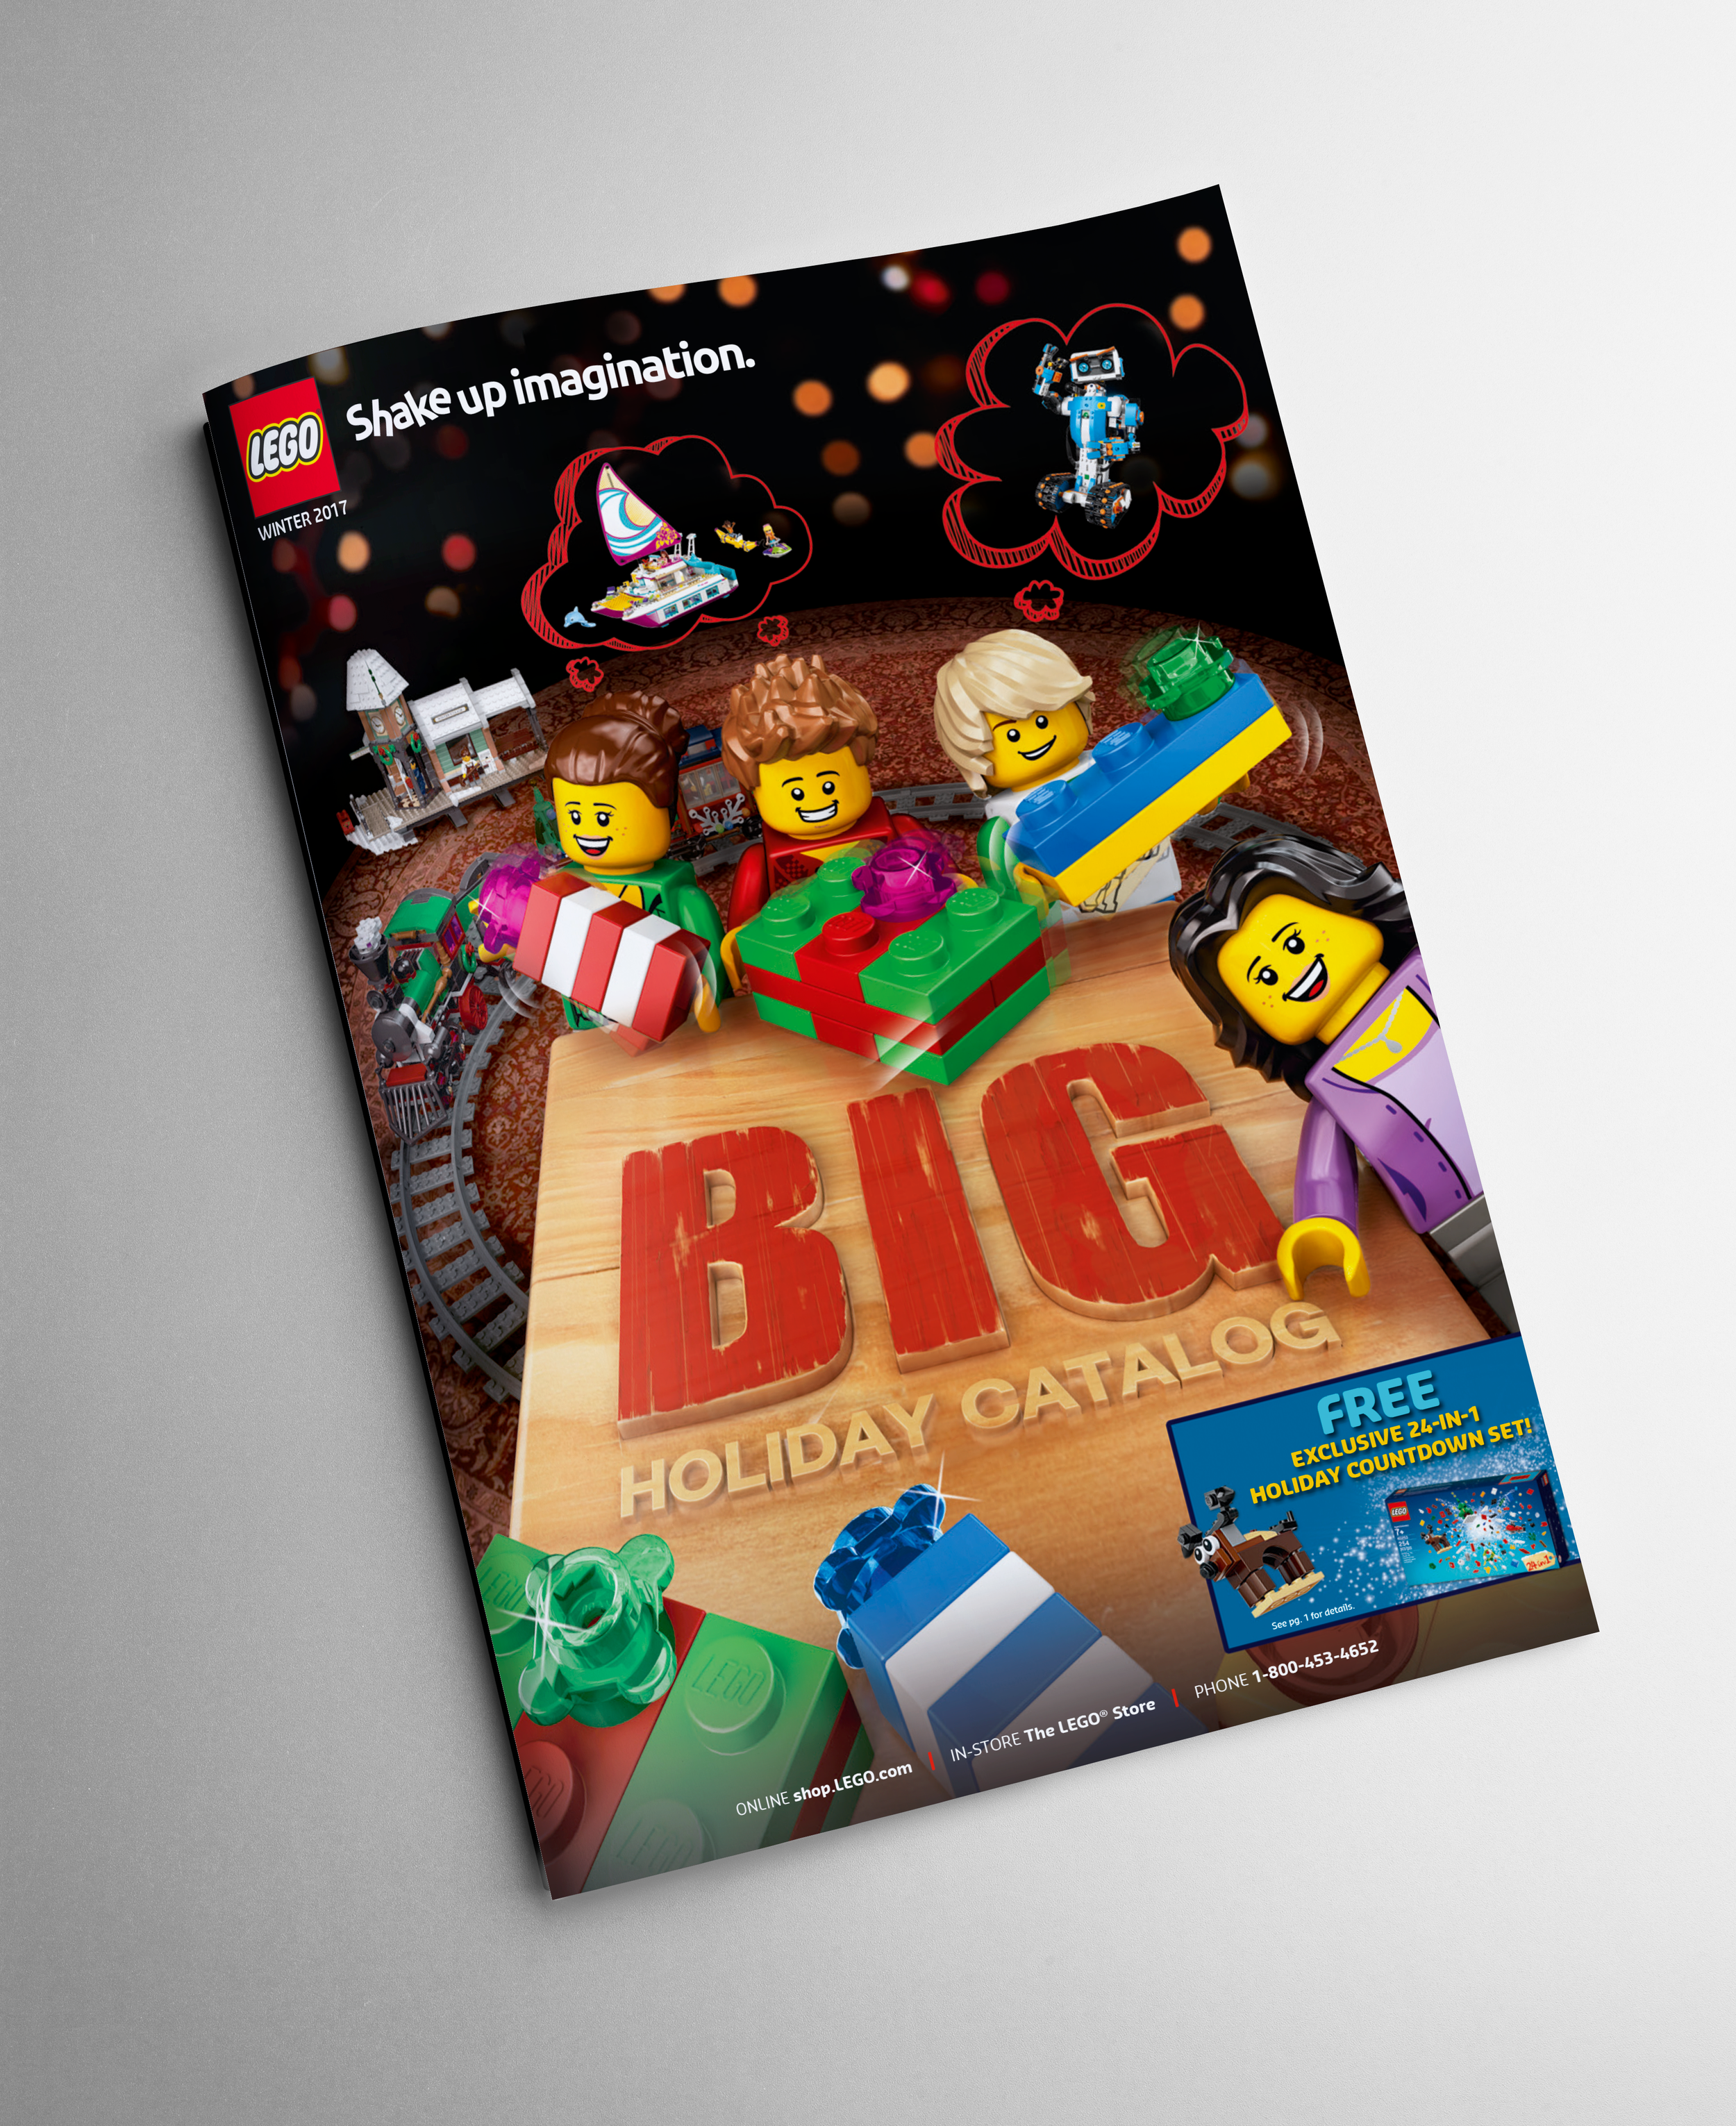 "2017 Big Holiday Catalog   I was tasked to design a creative cover that incorporated the 2017 North American Holiday Campaign - ""Shake up imagination""."